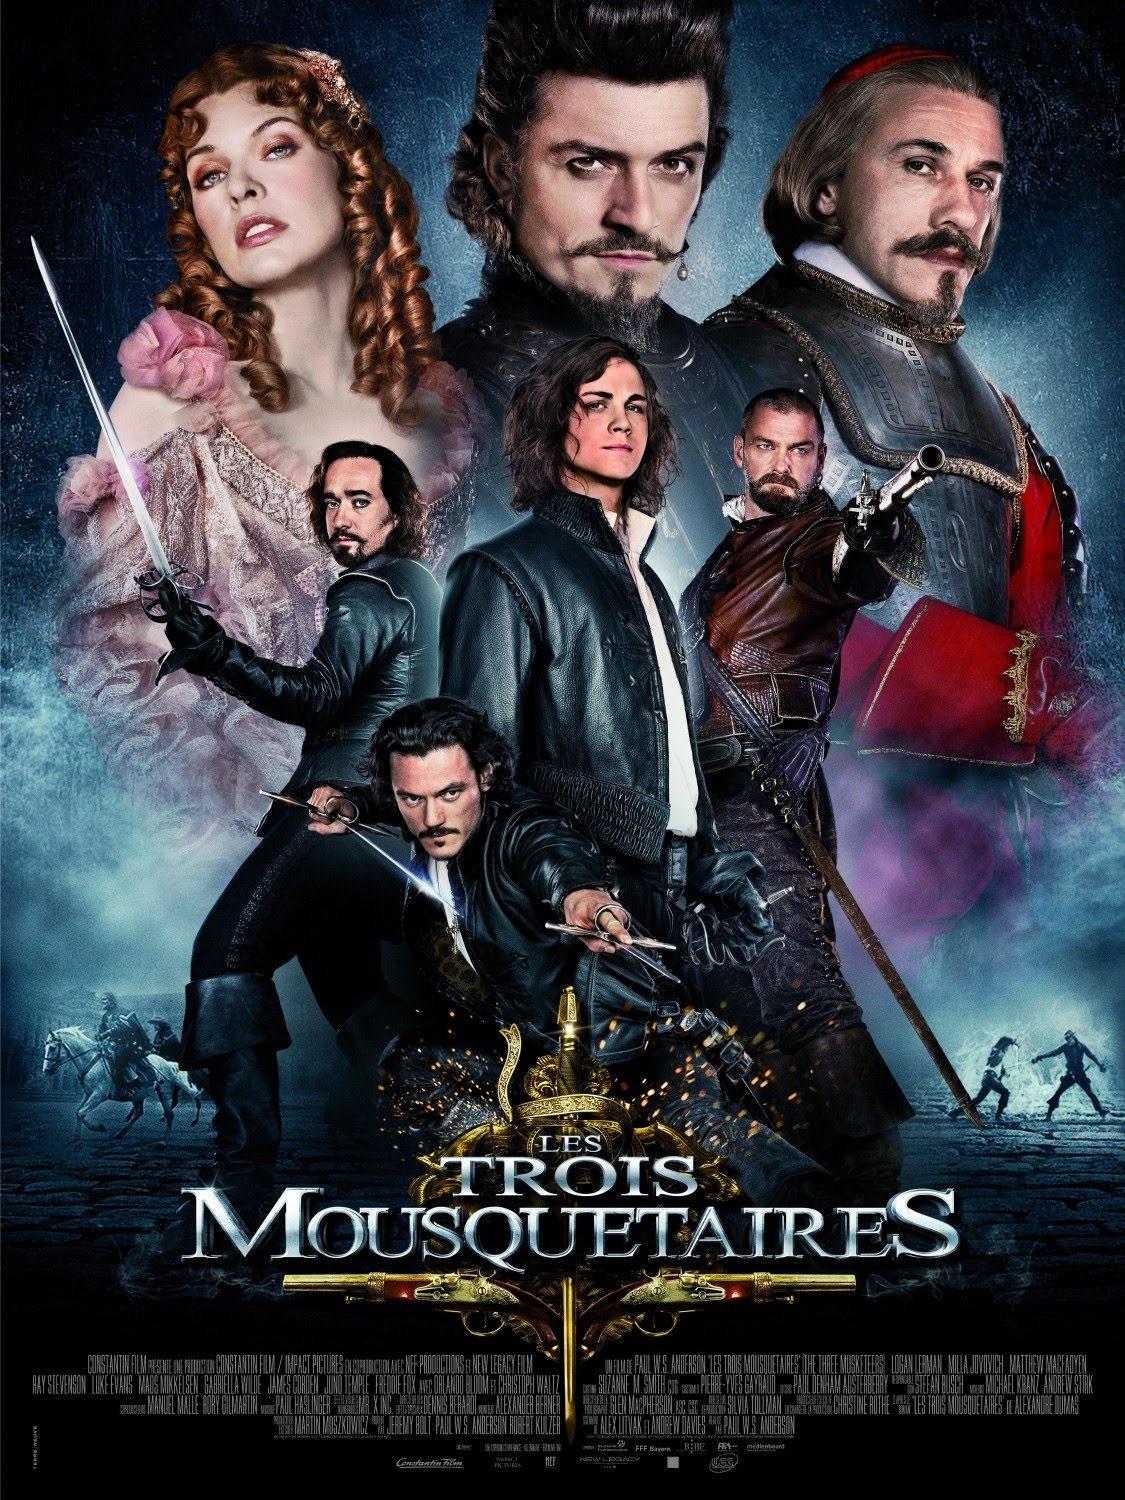 barbie and the 3 musketeers full movie 123movies